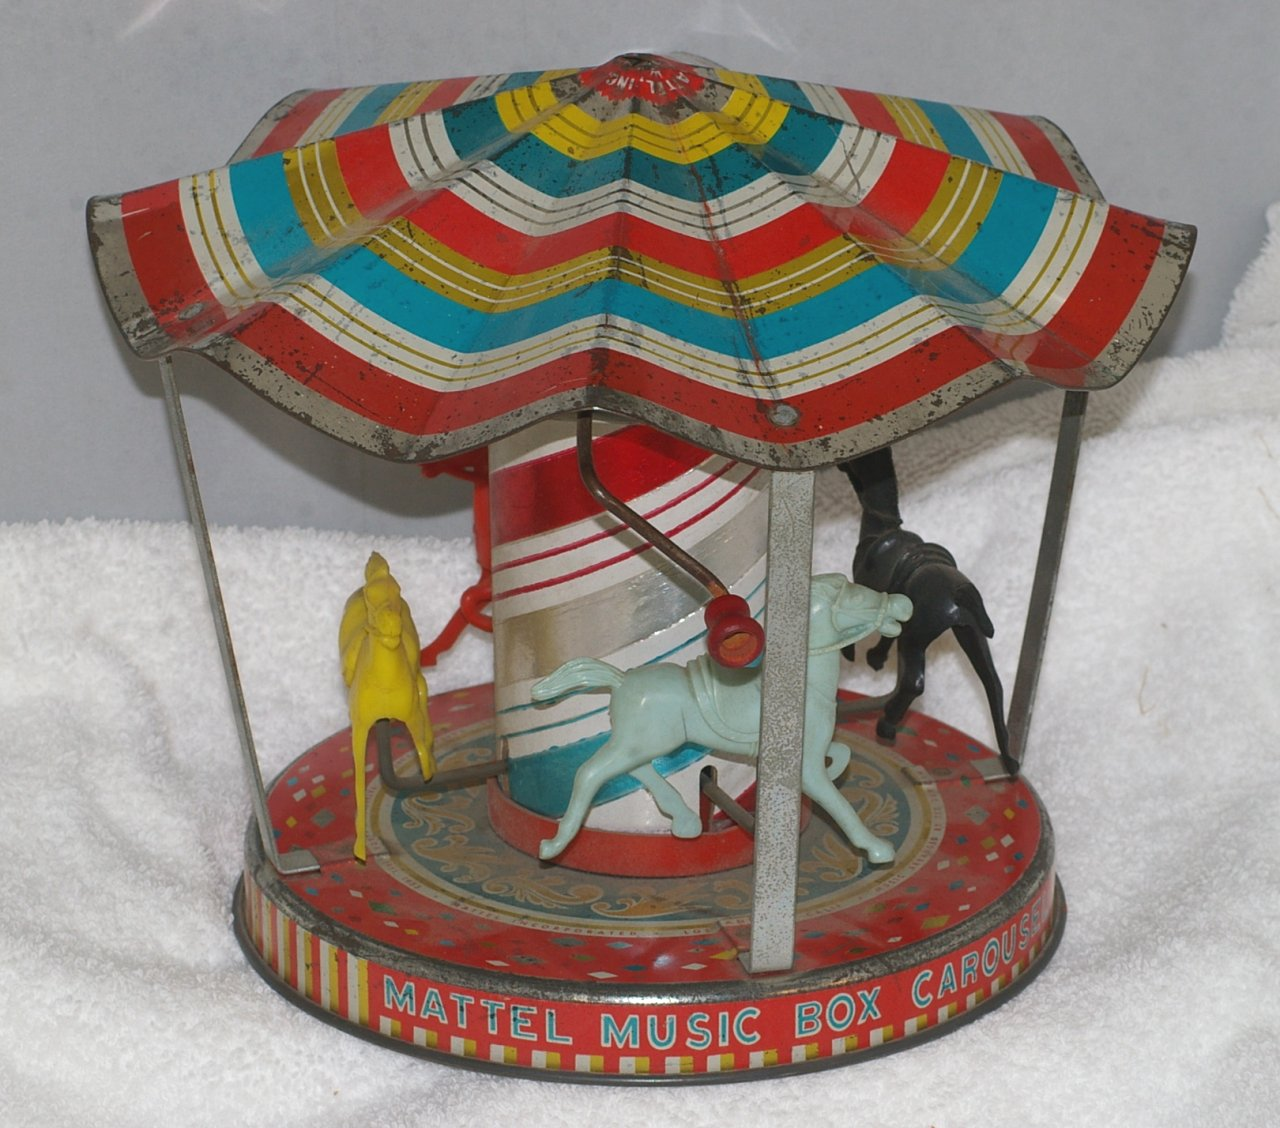 Mattel Music Box Carousel Tin and Plastic Toy from 1956